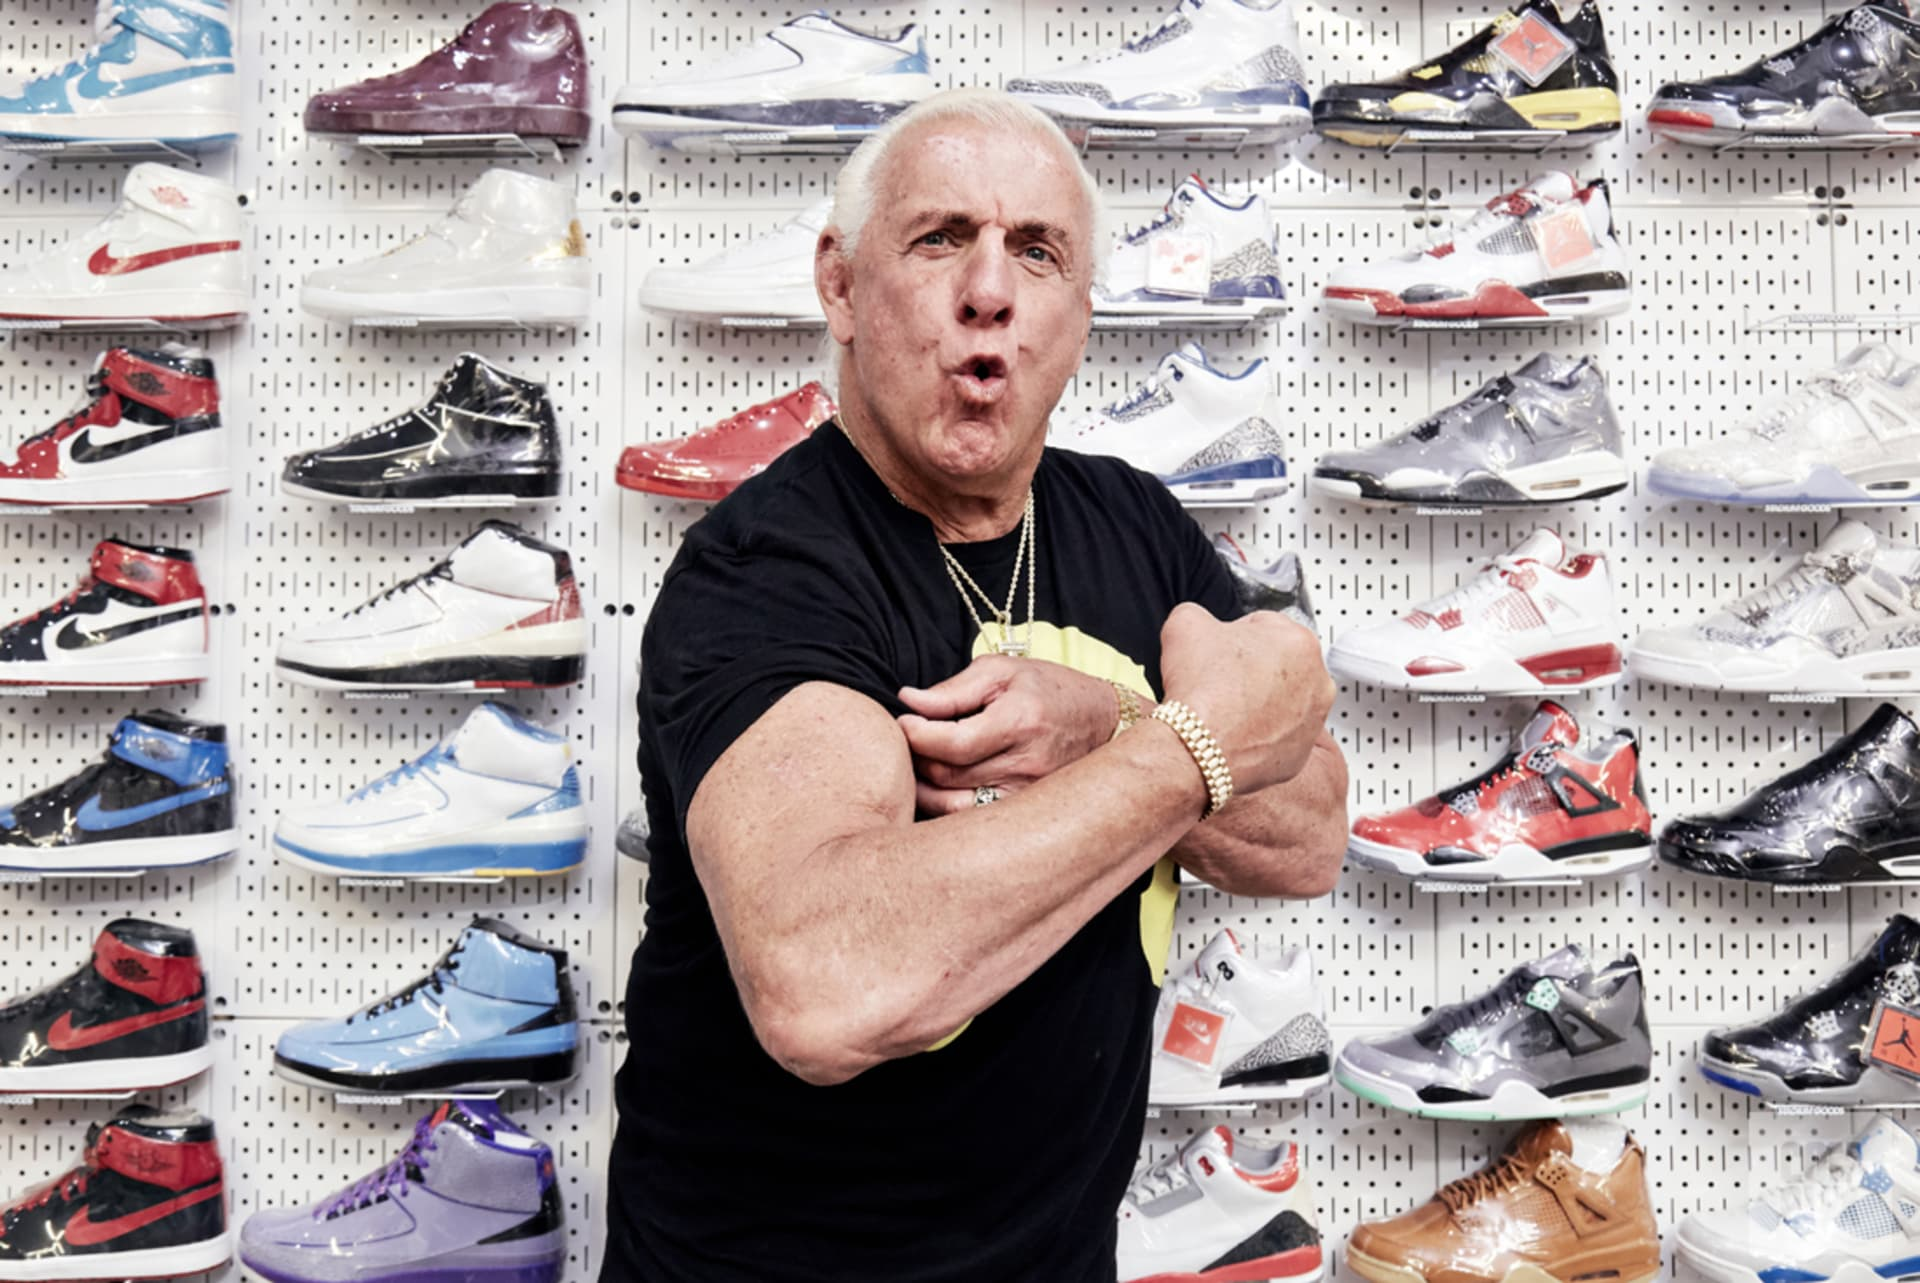 Ric Flair Sneaker Shopping Wide 1 Cabrera Original